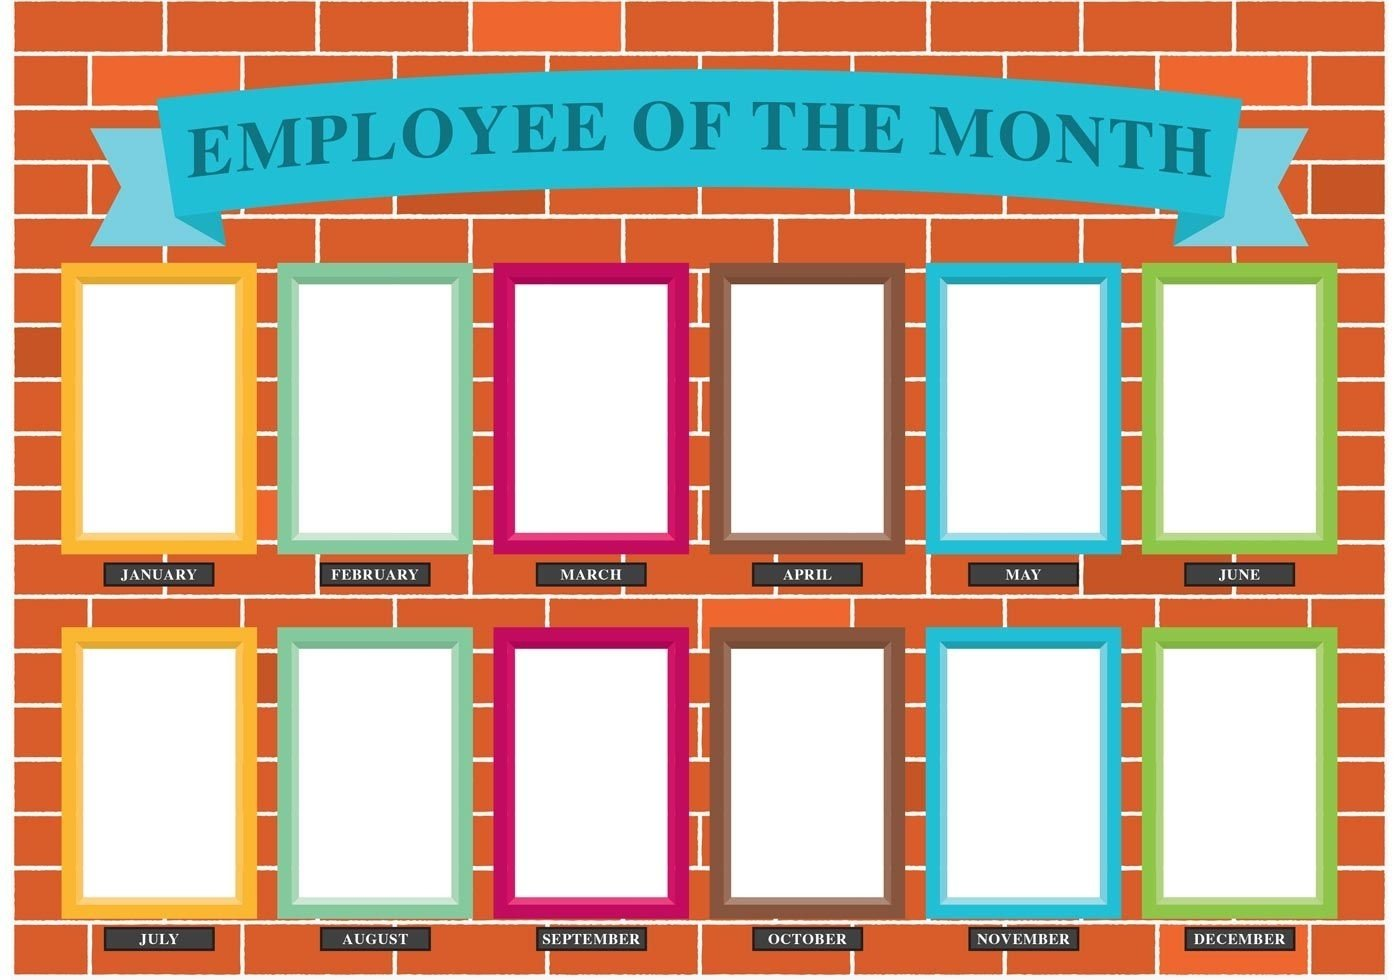 10 Awesome Employee Of The Month Ideas employee of the month wall google search employee of the month